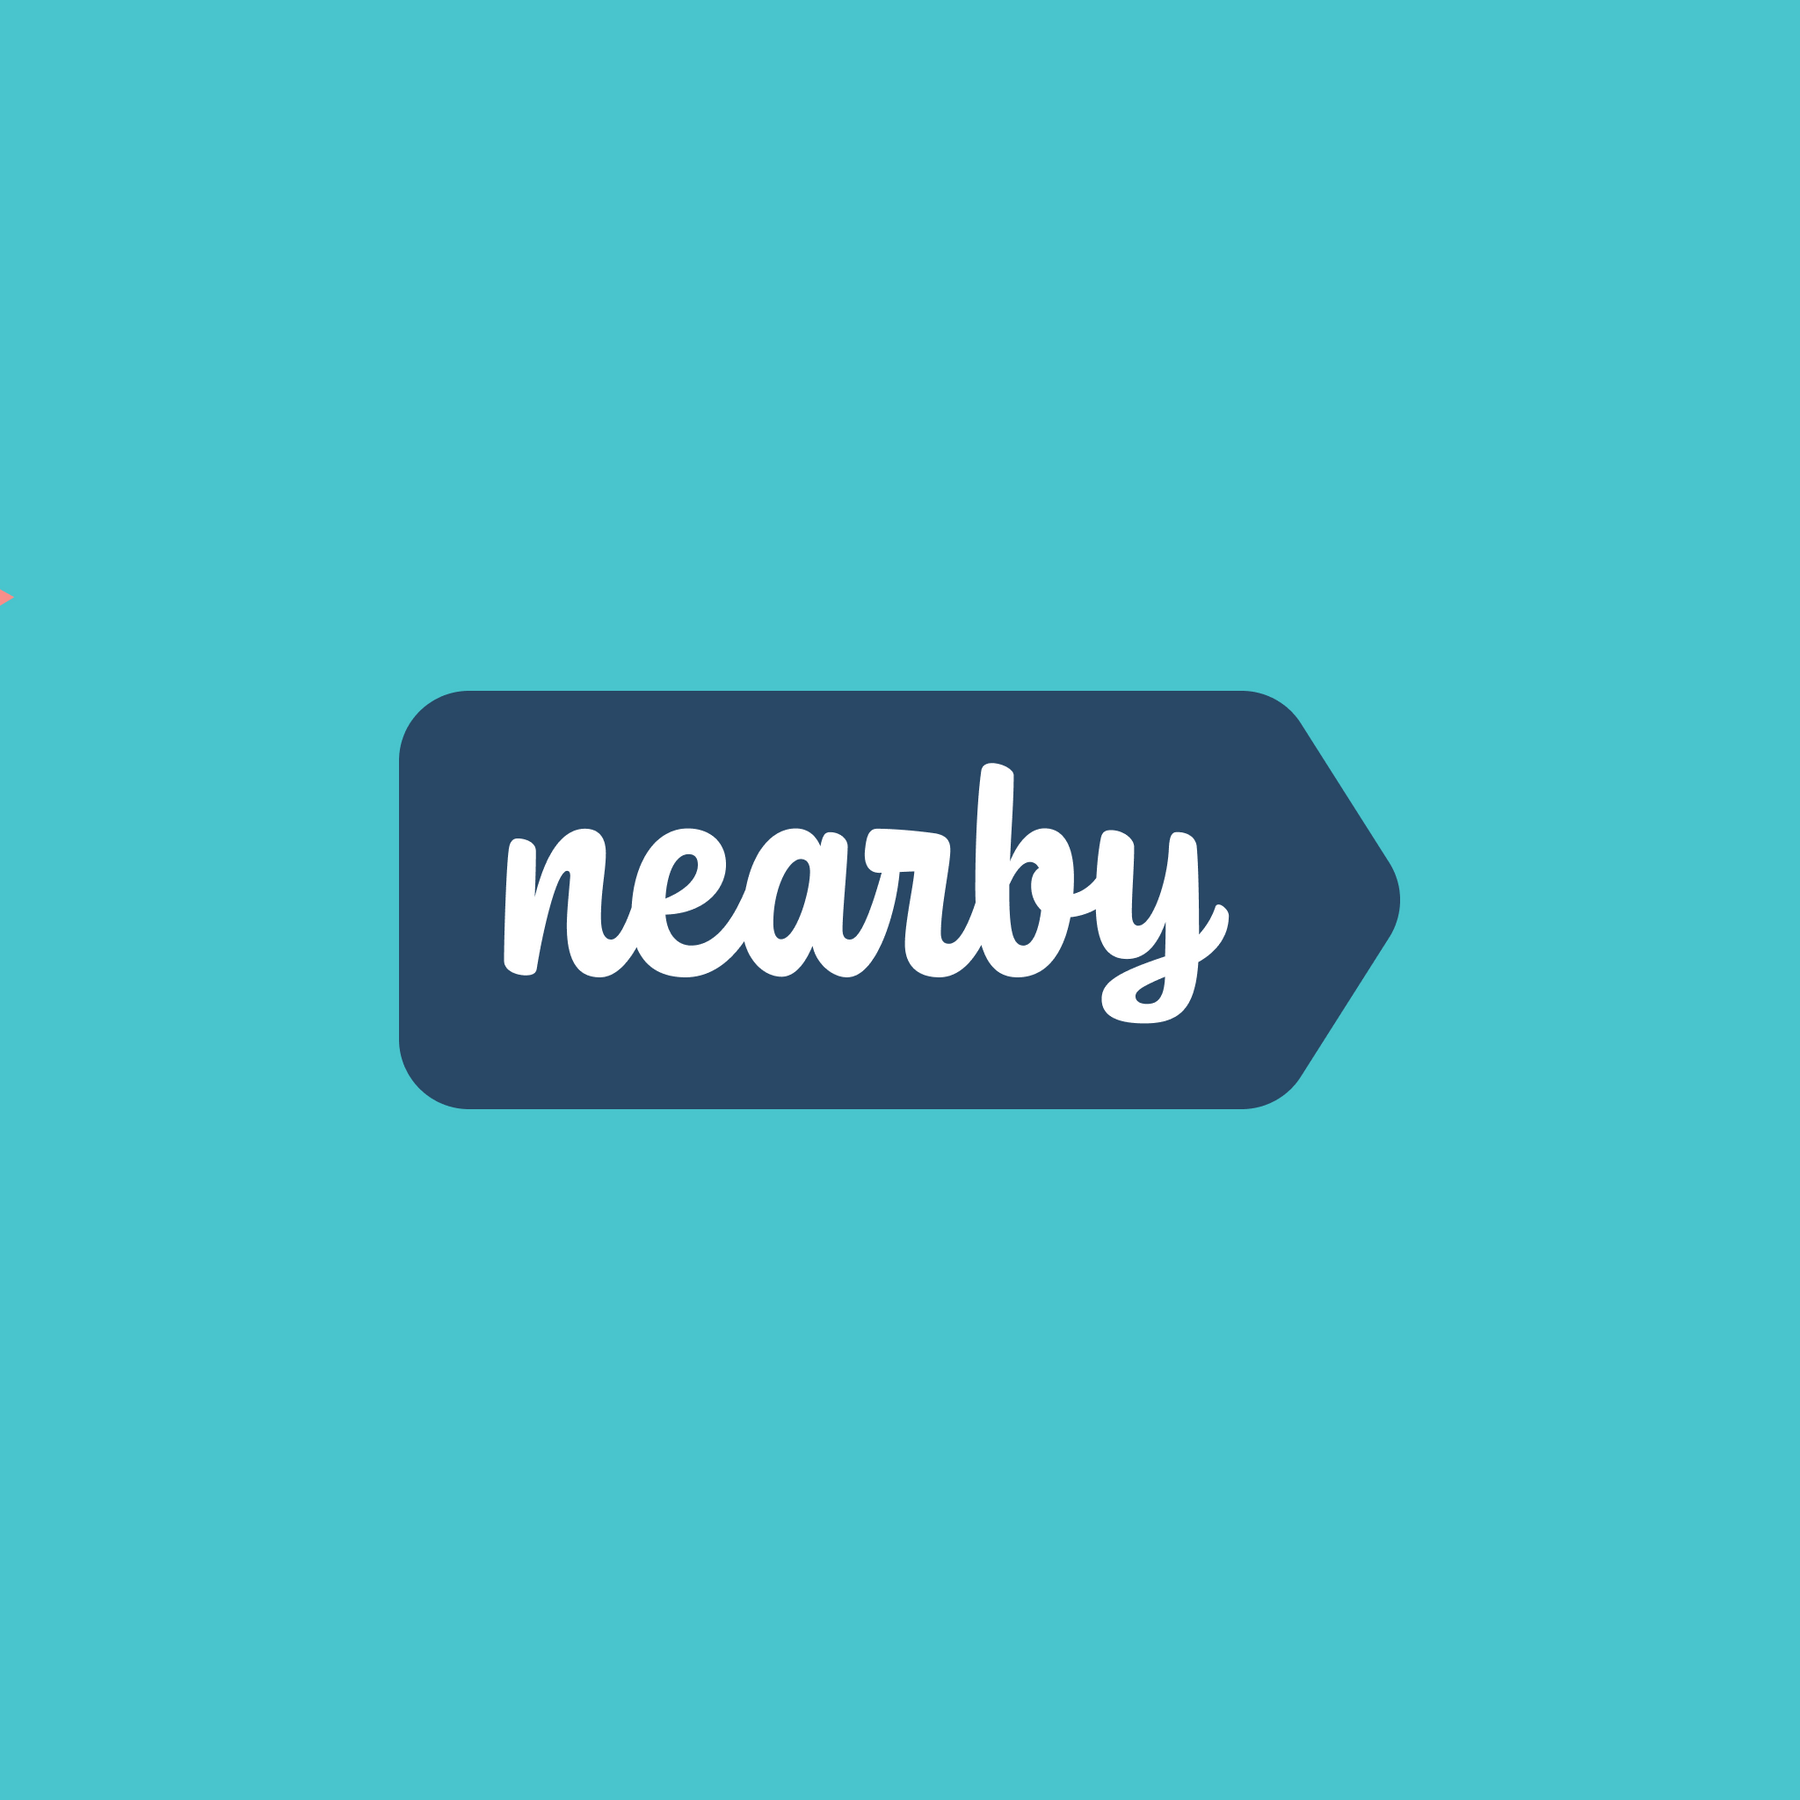 Introducing: Nearby